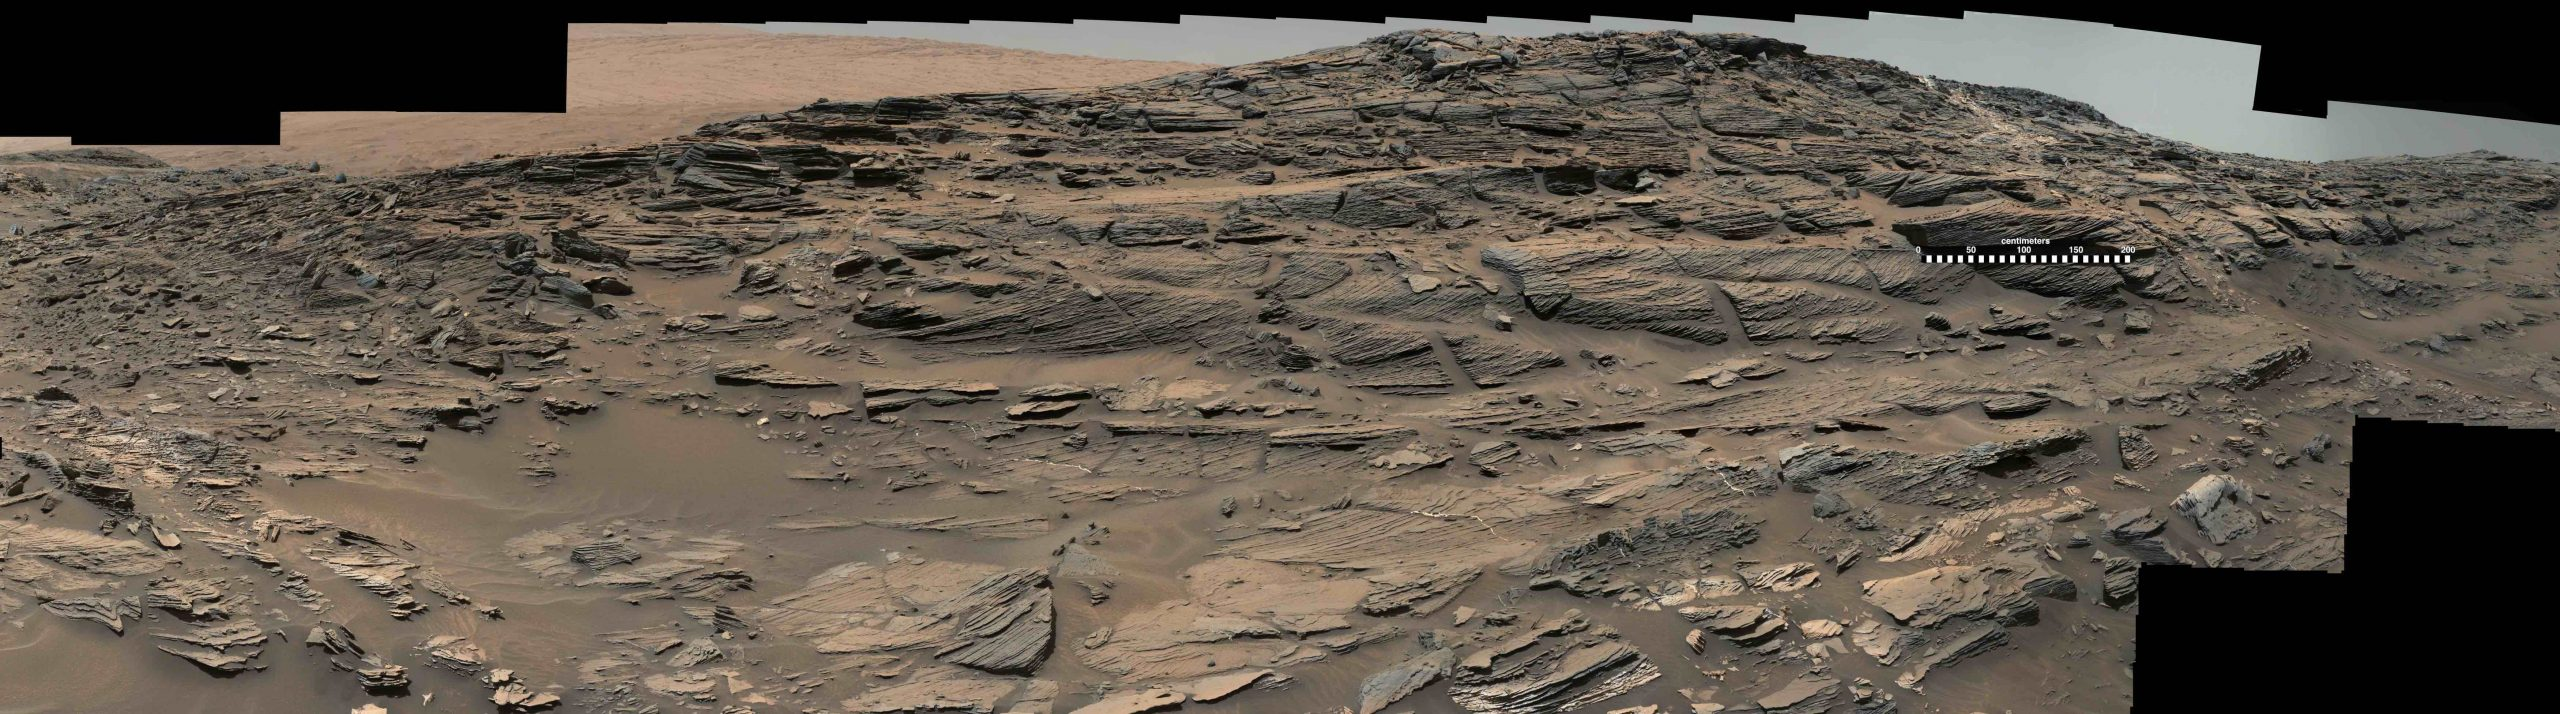 Cross-bedding outcrop at Whale Rock, Mars.